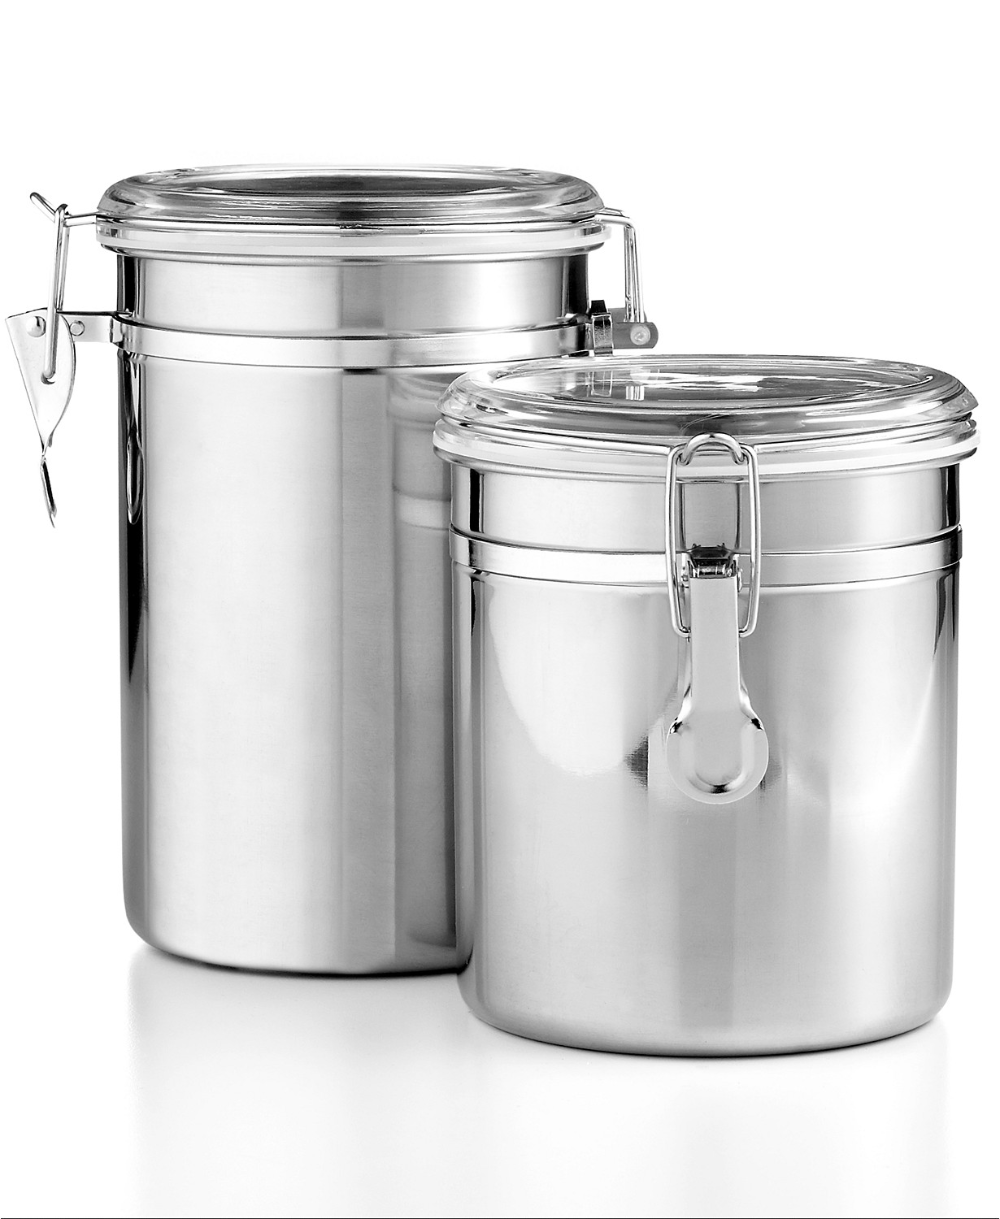 stewart kitchen canisters martha stewart collection set of 2 food storage canisters